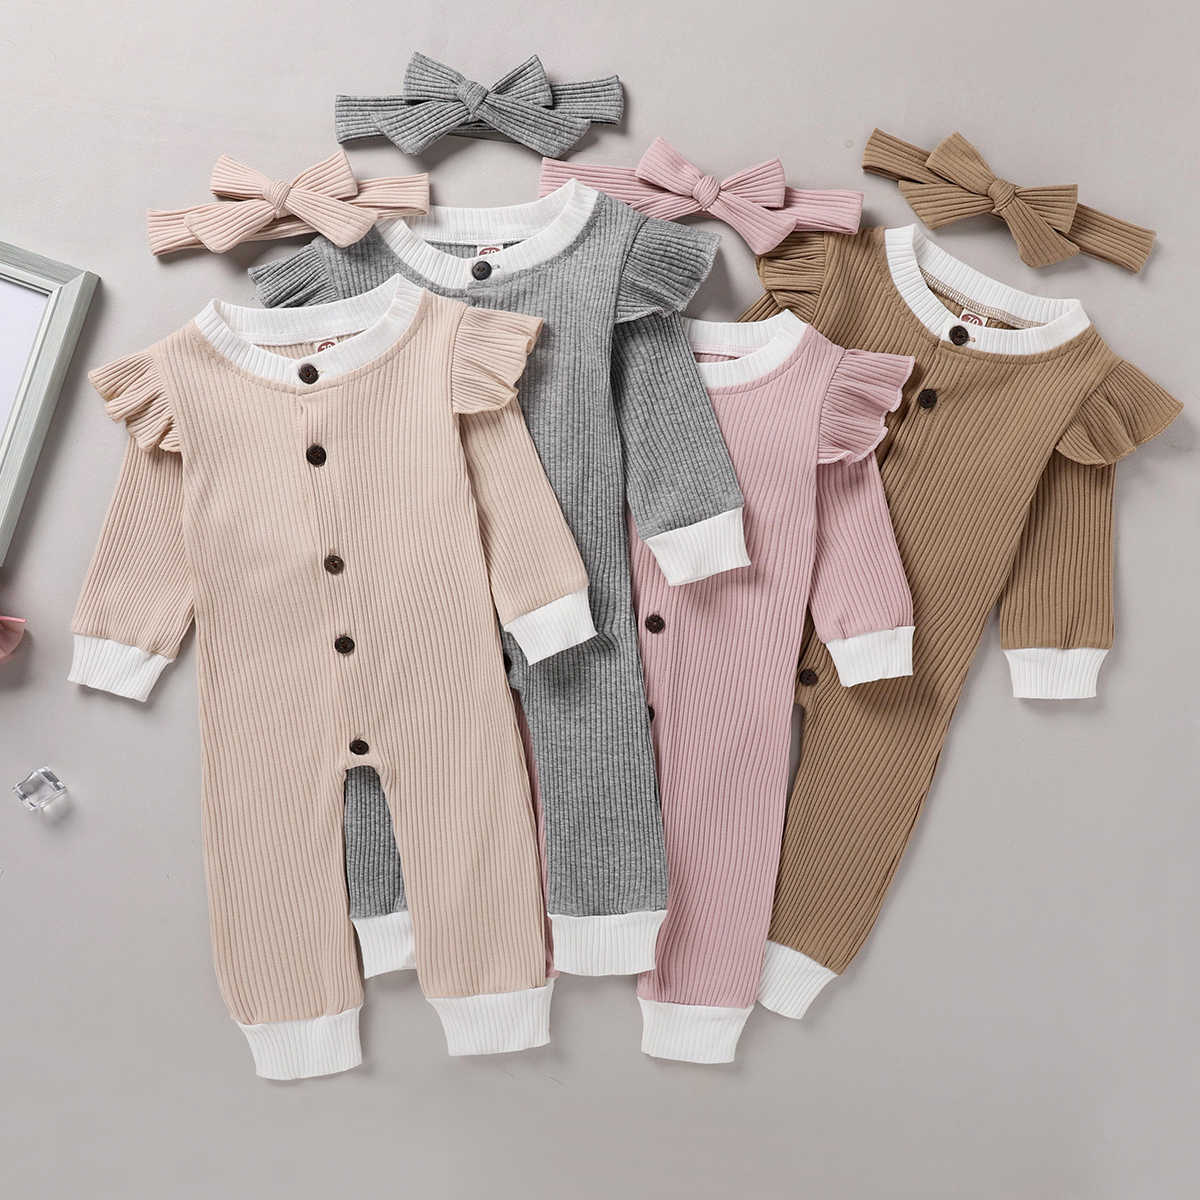 2Pcs Set Cute Newborn Baby Girls Rompers Ruffles Long Sleeve Cotton Single Breasted Jumpsuits+Headband Little Baby Outfits